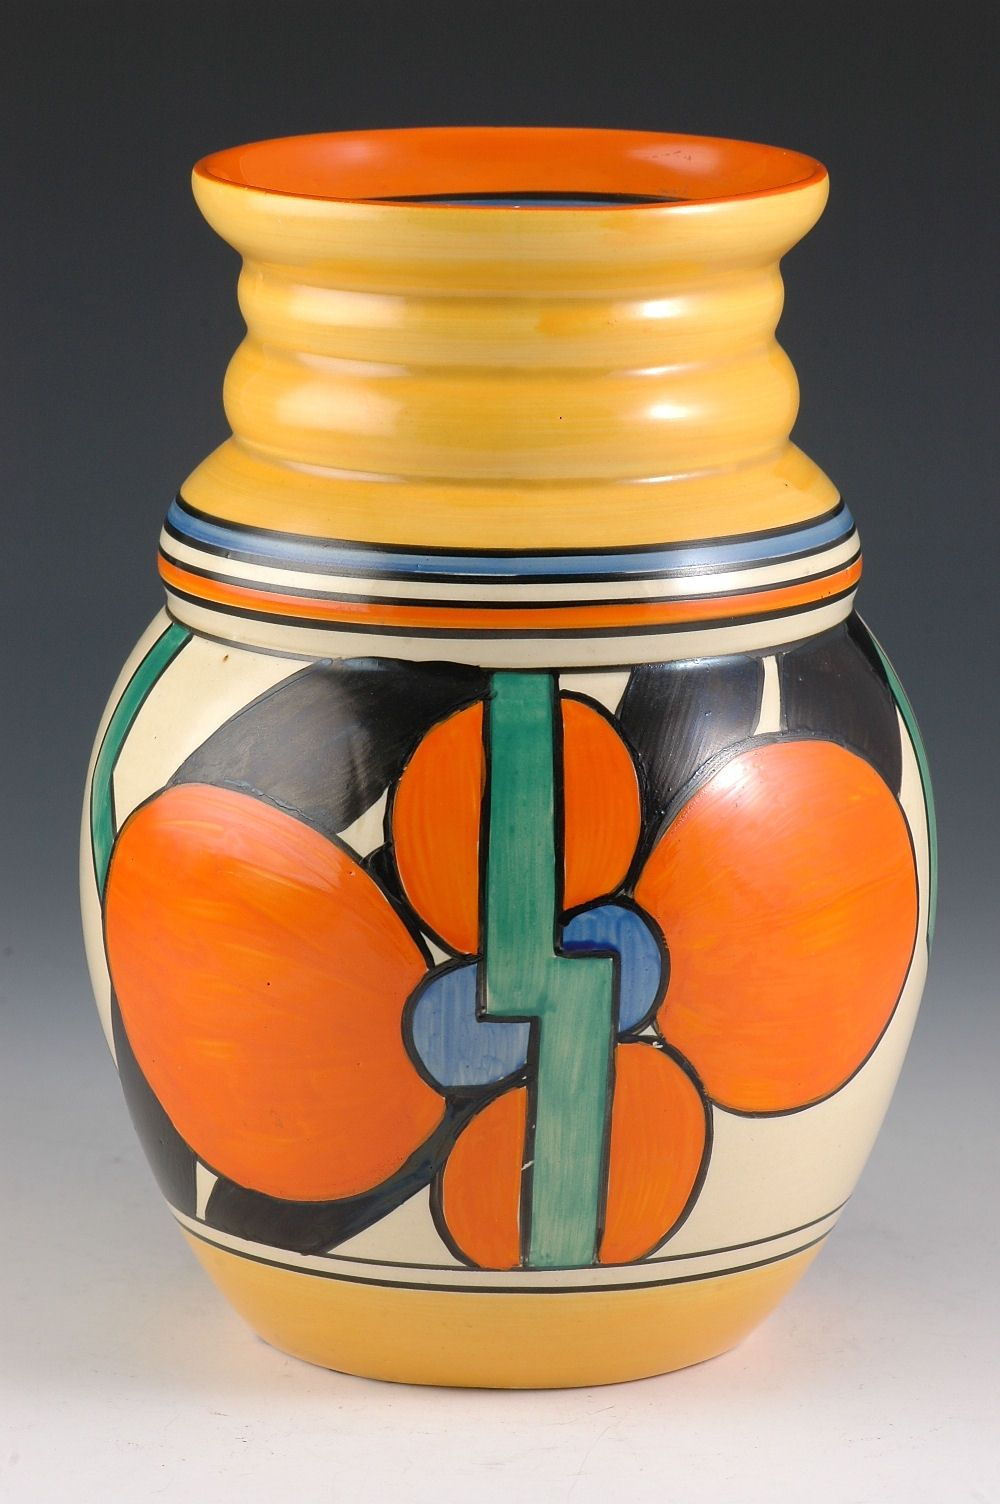 Clarice cliff 358 shape vase pacasso flower pattern bizarre clarice cliff 358 shape vase pacasso flower pattern bizarre marked 1929 200mm reviewsmspy